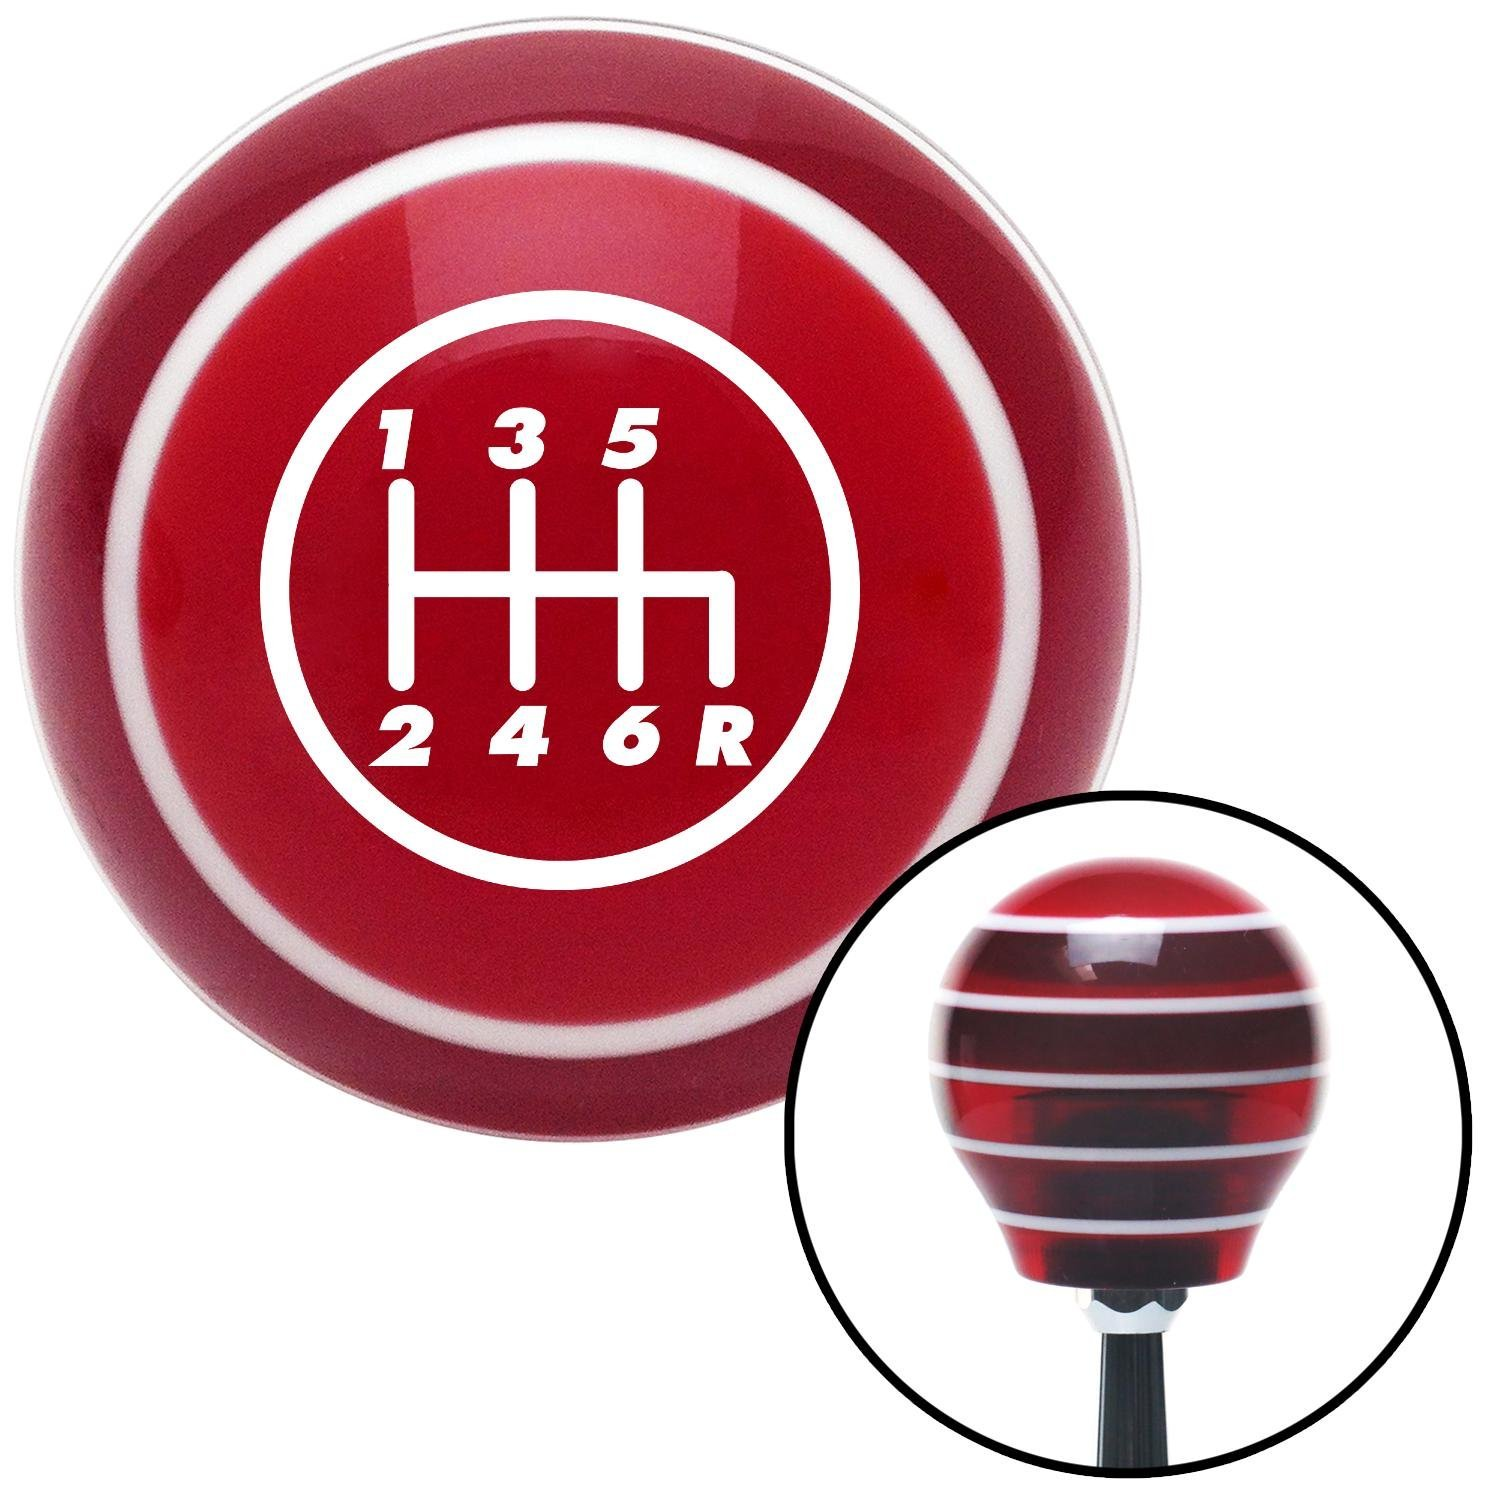 American Shifter 117409 Red Stripe Shift Knob with M16 x 1.5 Insert White 6 Speed Shift Pattern - 6RDR